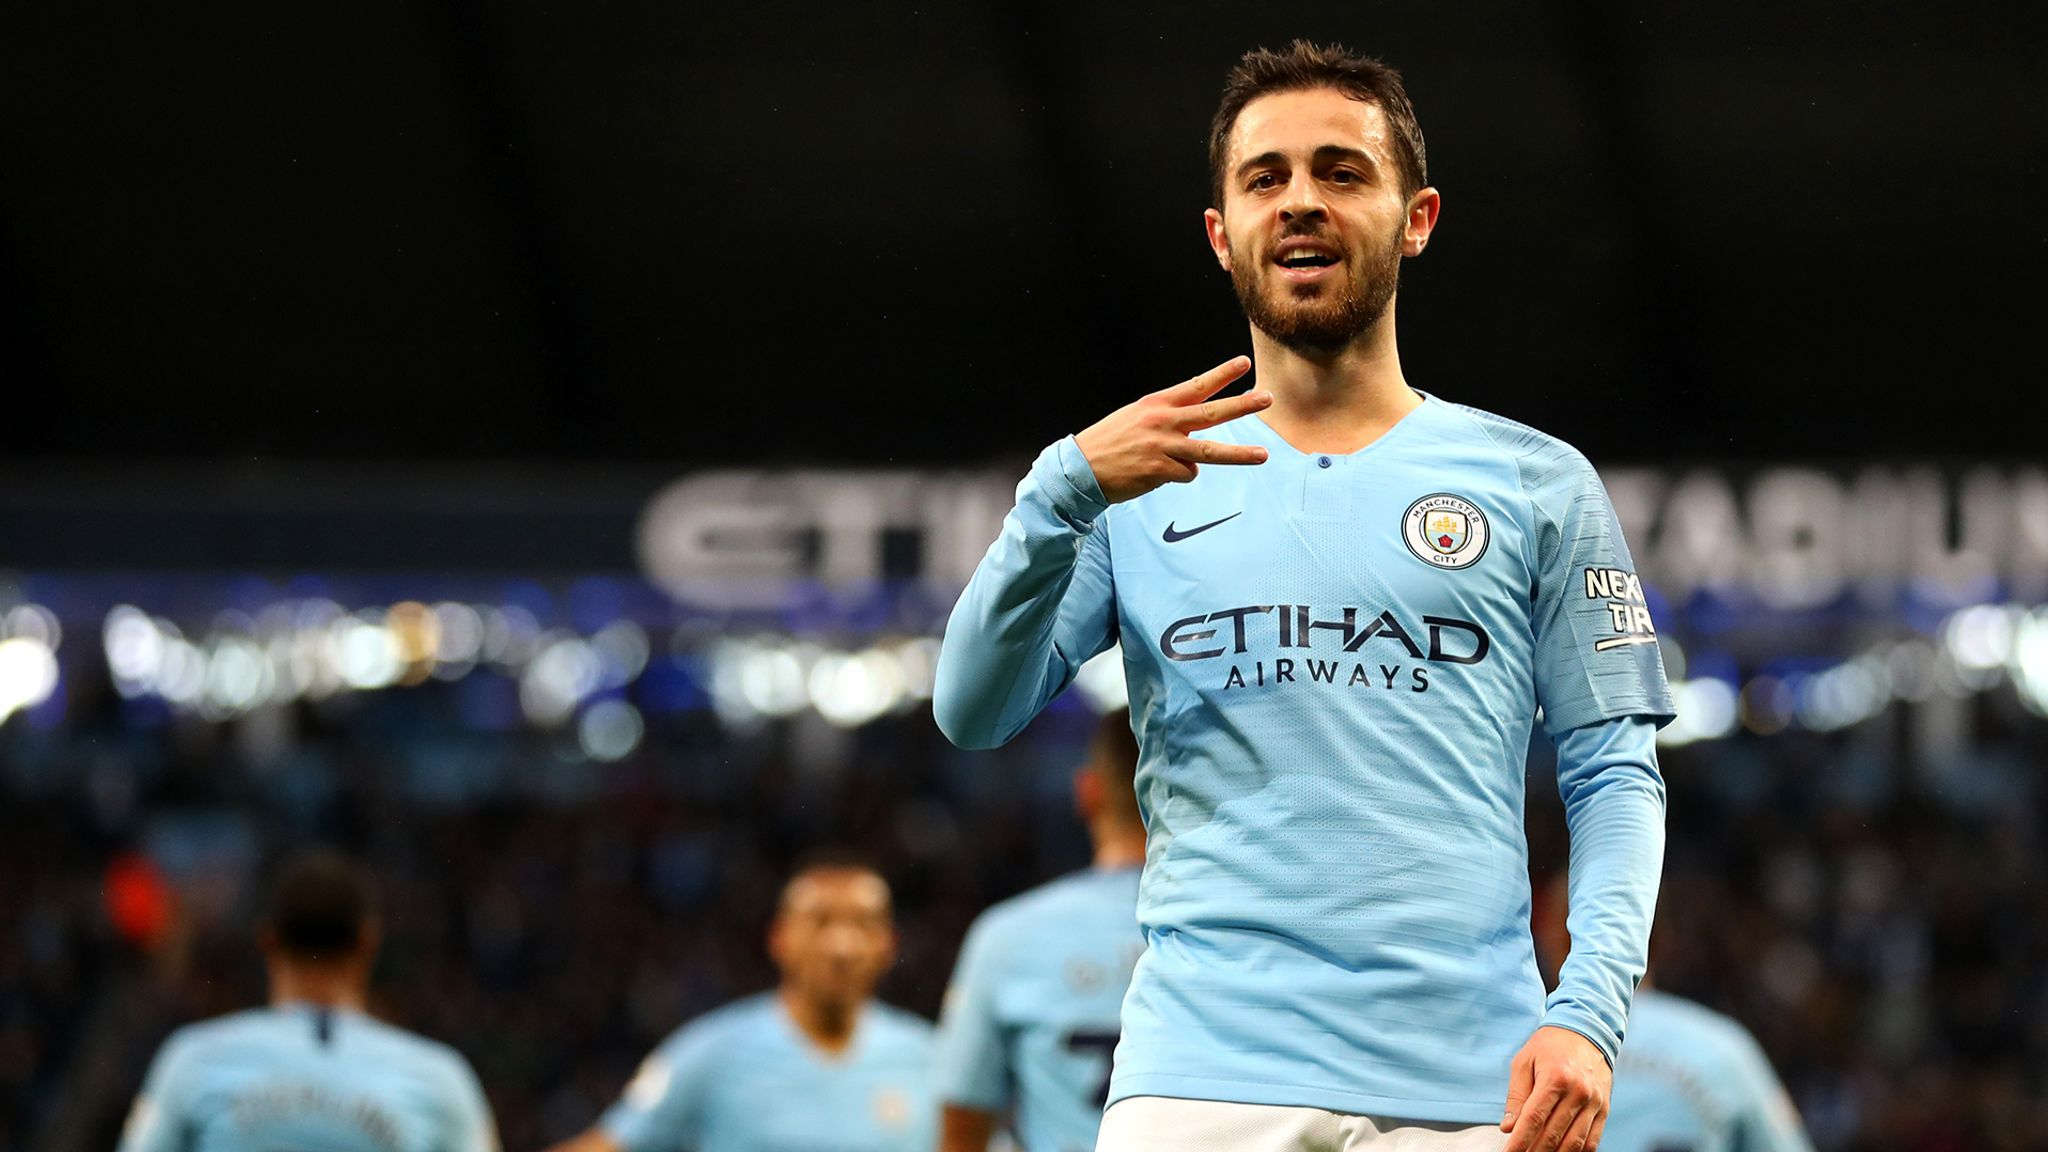 Bernardo Silva: Manchester City star charged by FA over 'racist' post about teammate